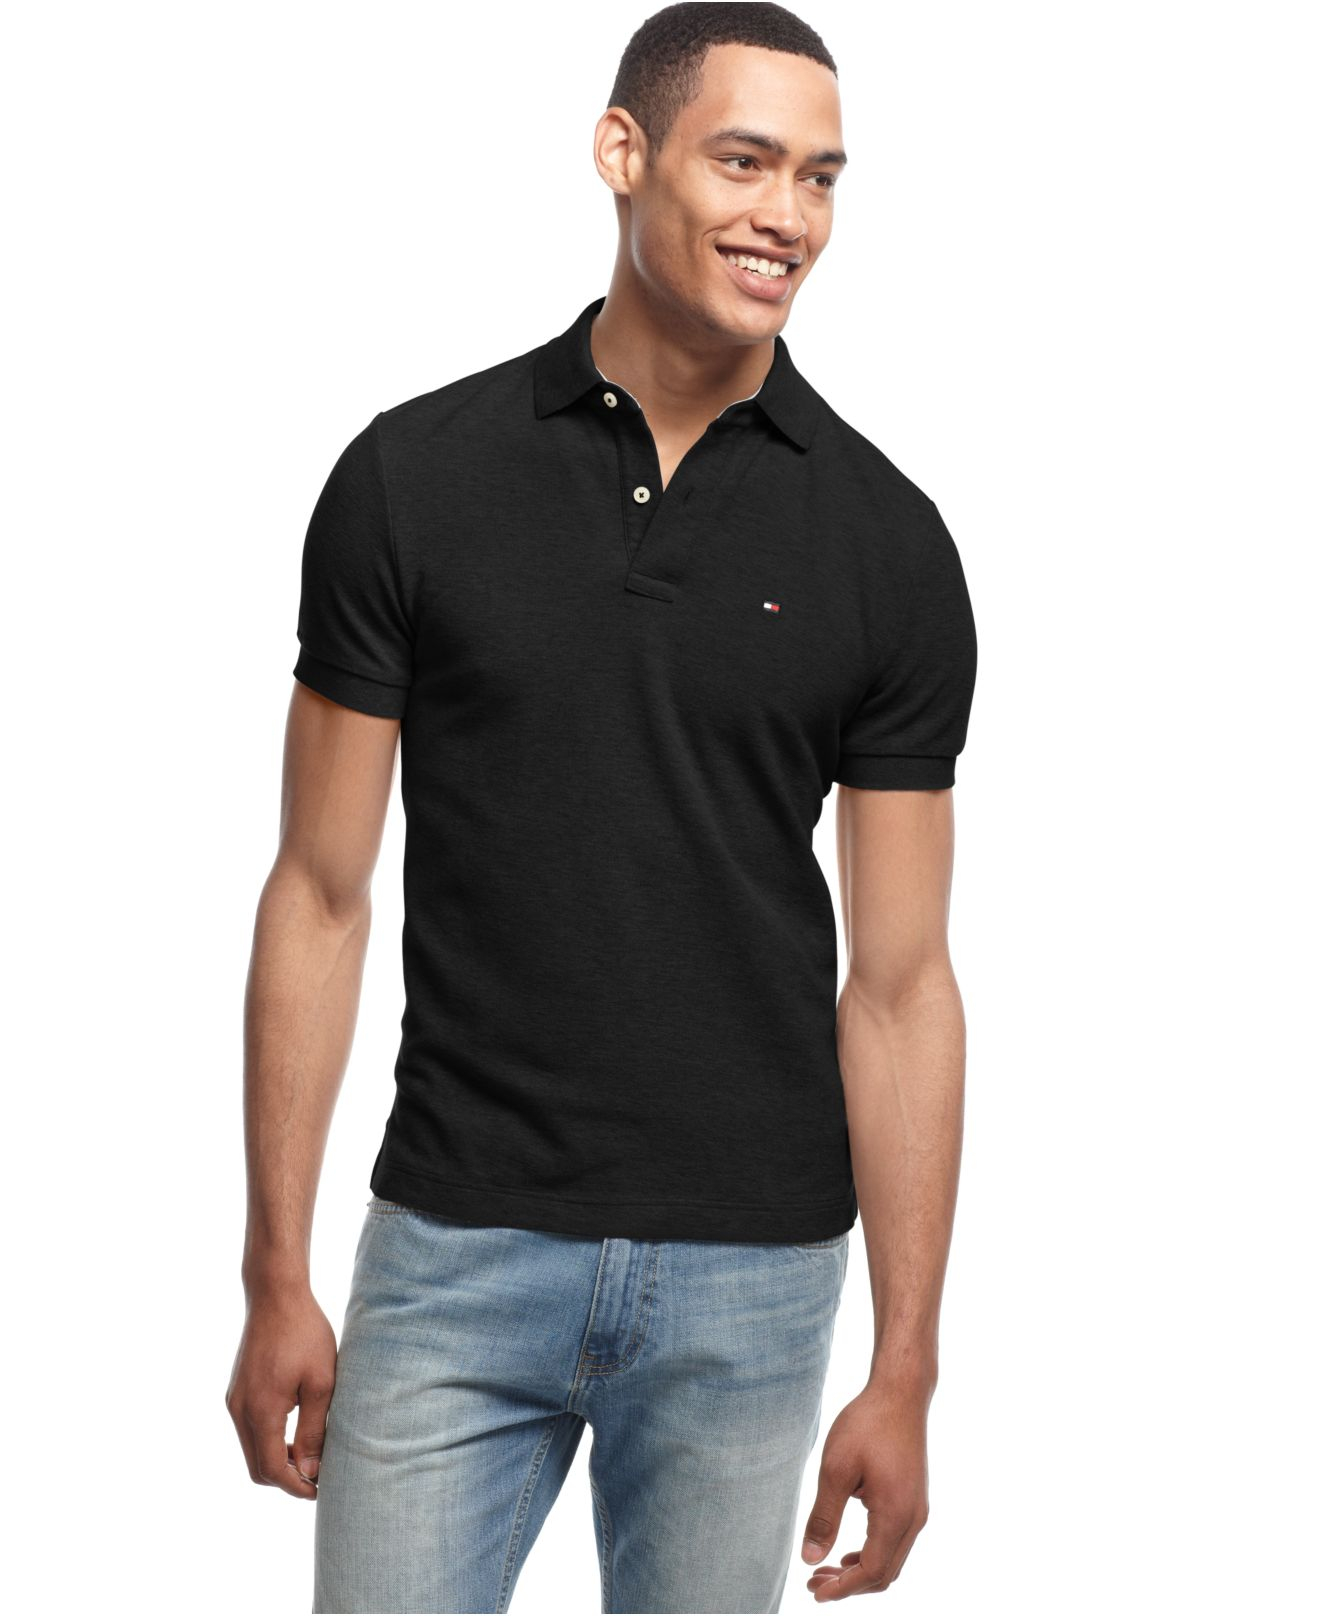 0bfb401d Mens Polo Shirts At Macys - Cotswold Hire